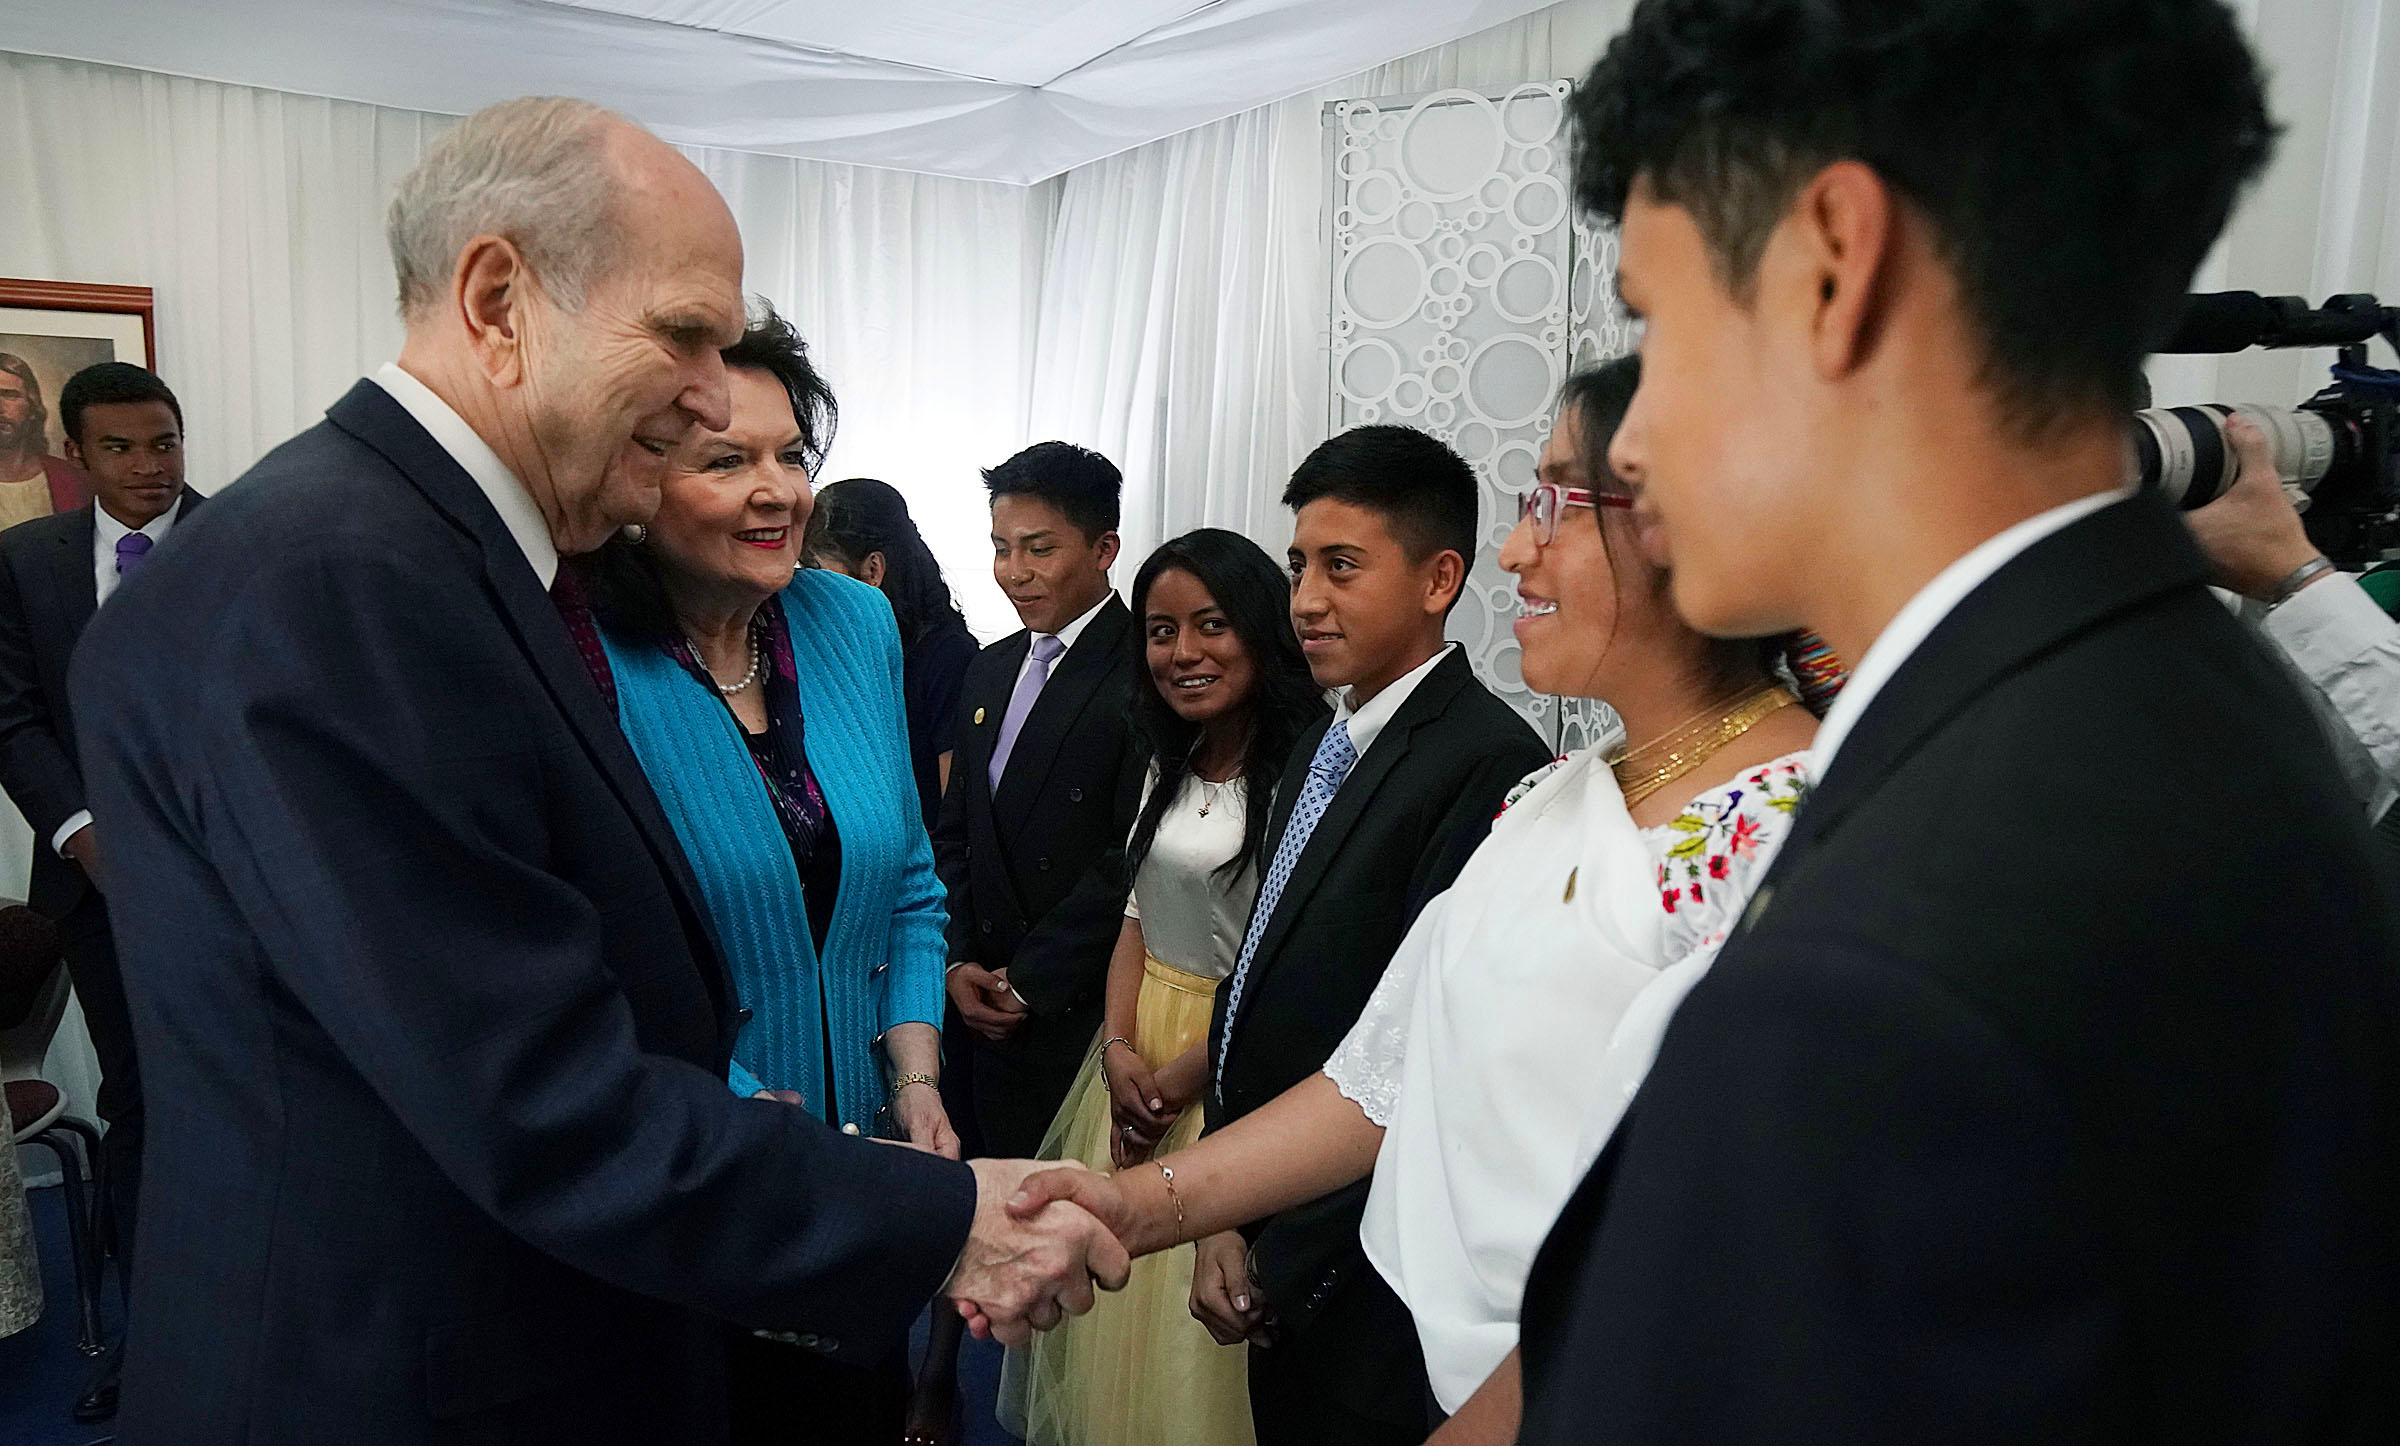 President Russell M. Nelson of The Church of Jesus Christ of Latter-day Saints and his wife, Sister Wendy Nelson, greet Rubi Tituana before a Latin America Ministry Tour devotional in Quito, Ecuador on Monday, Aug. 26, 2019.